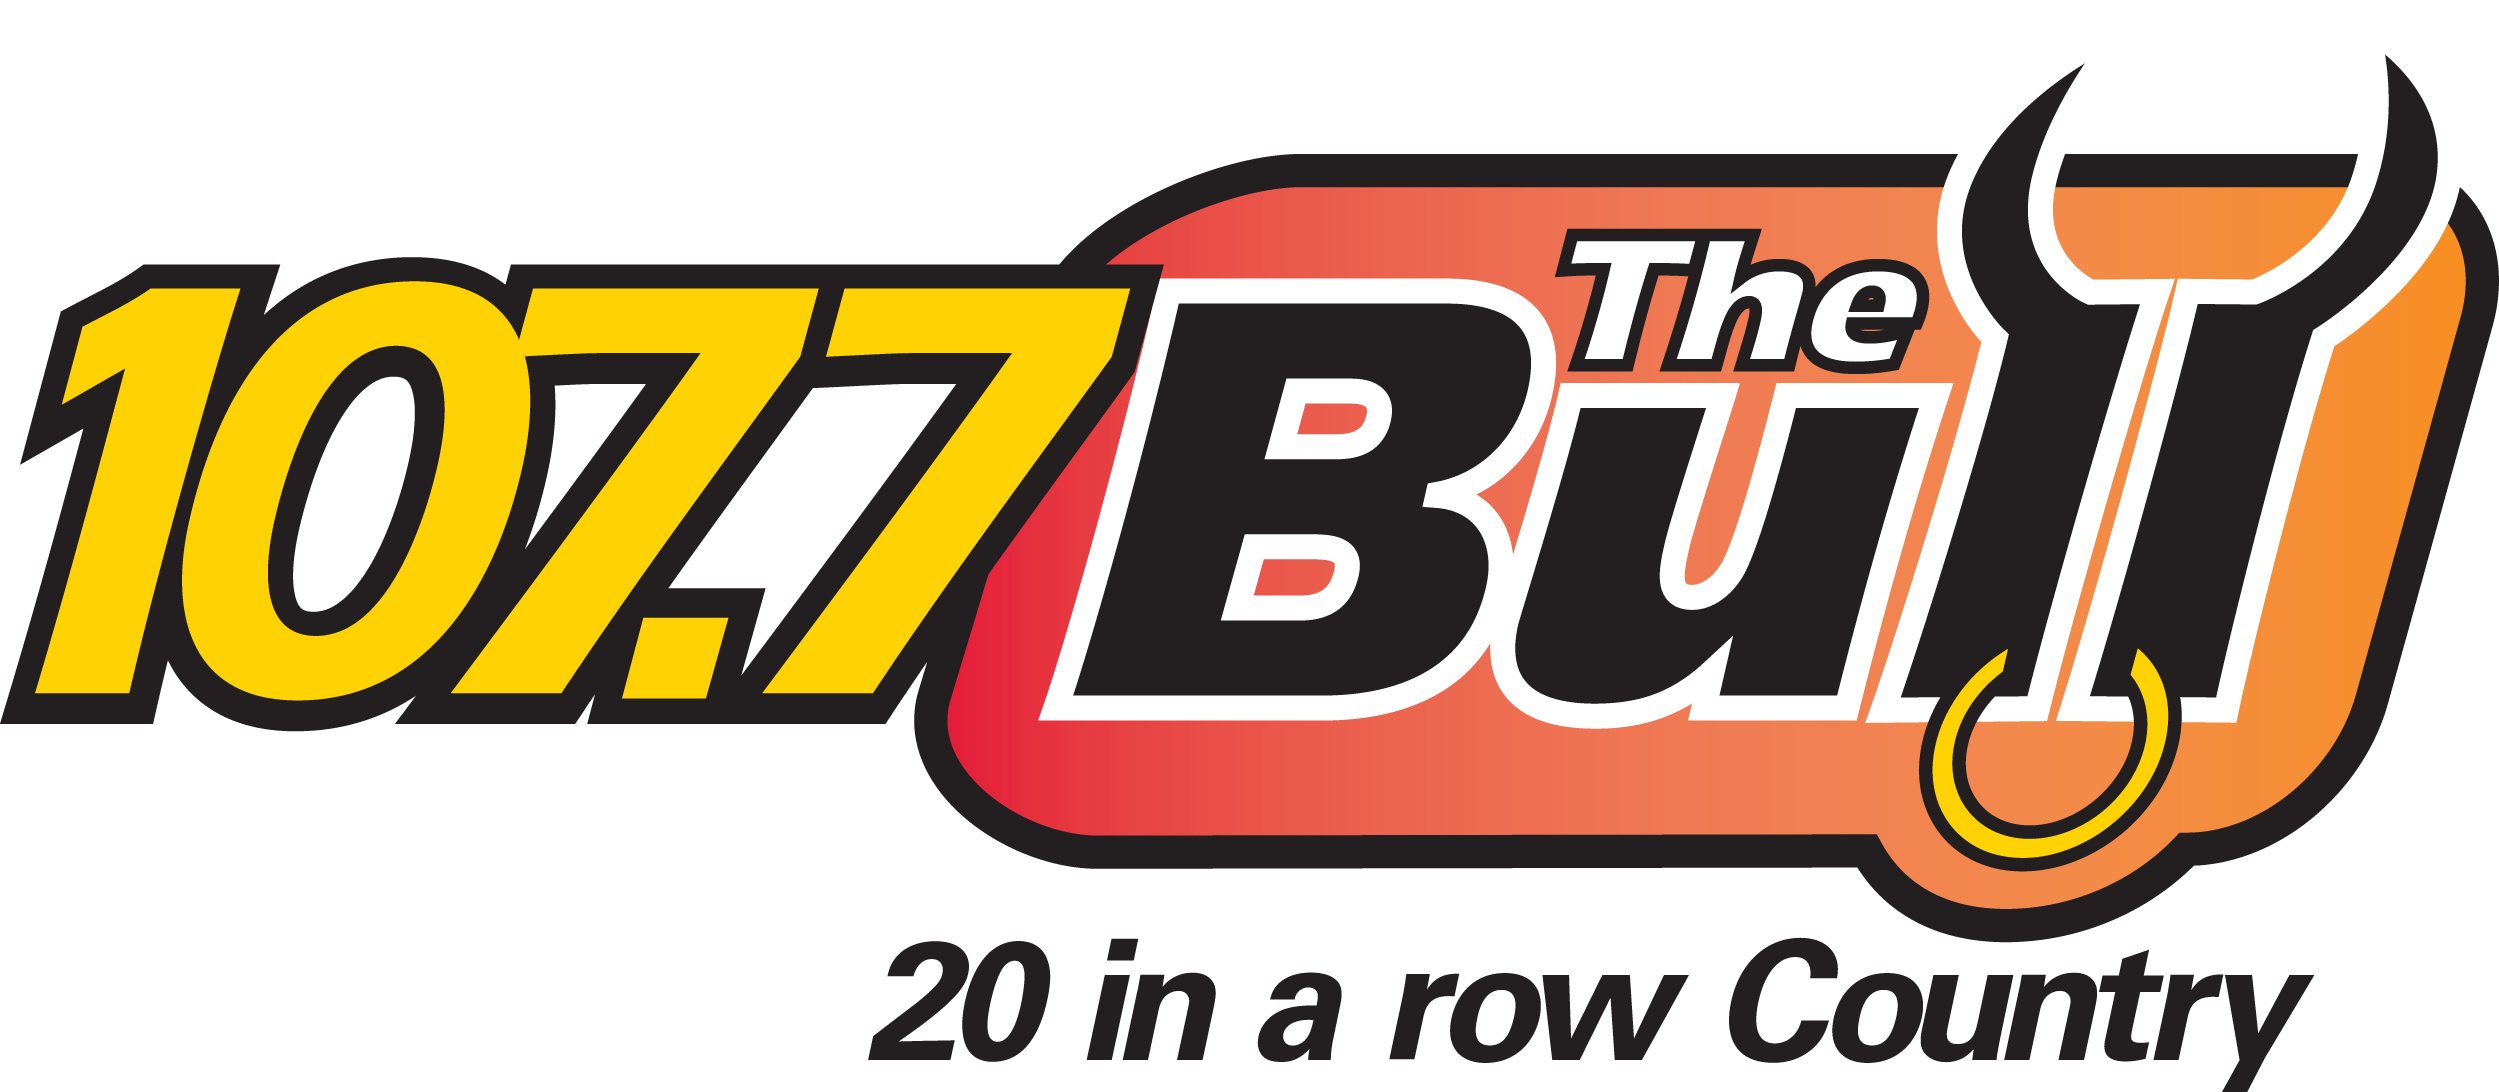 Double Eagle Sponsor - Bull 1077 with tag.jpg